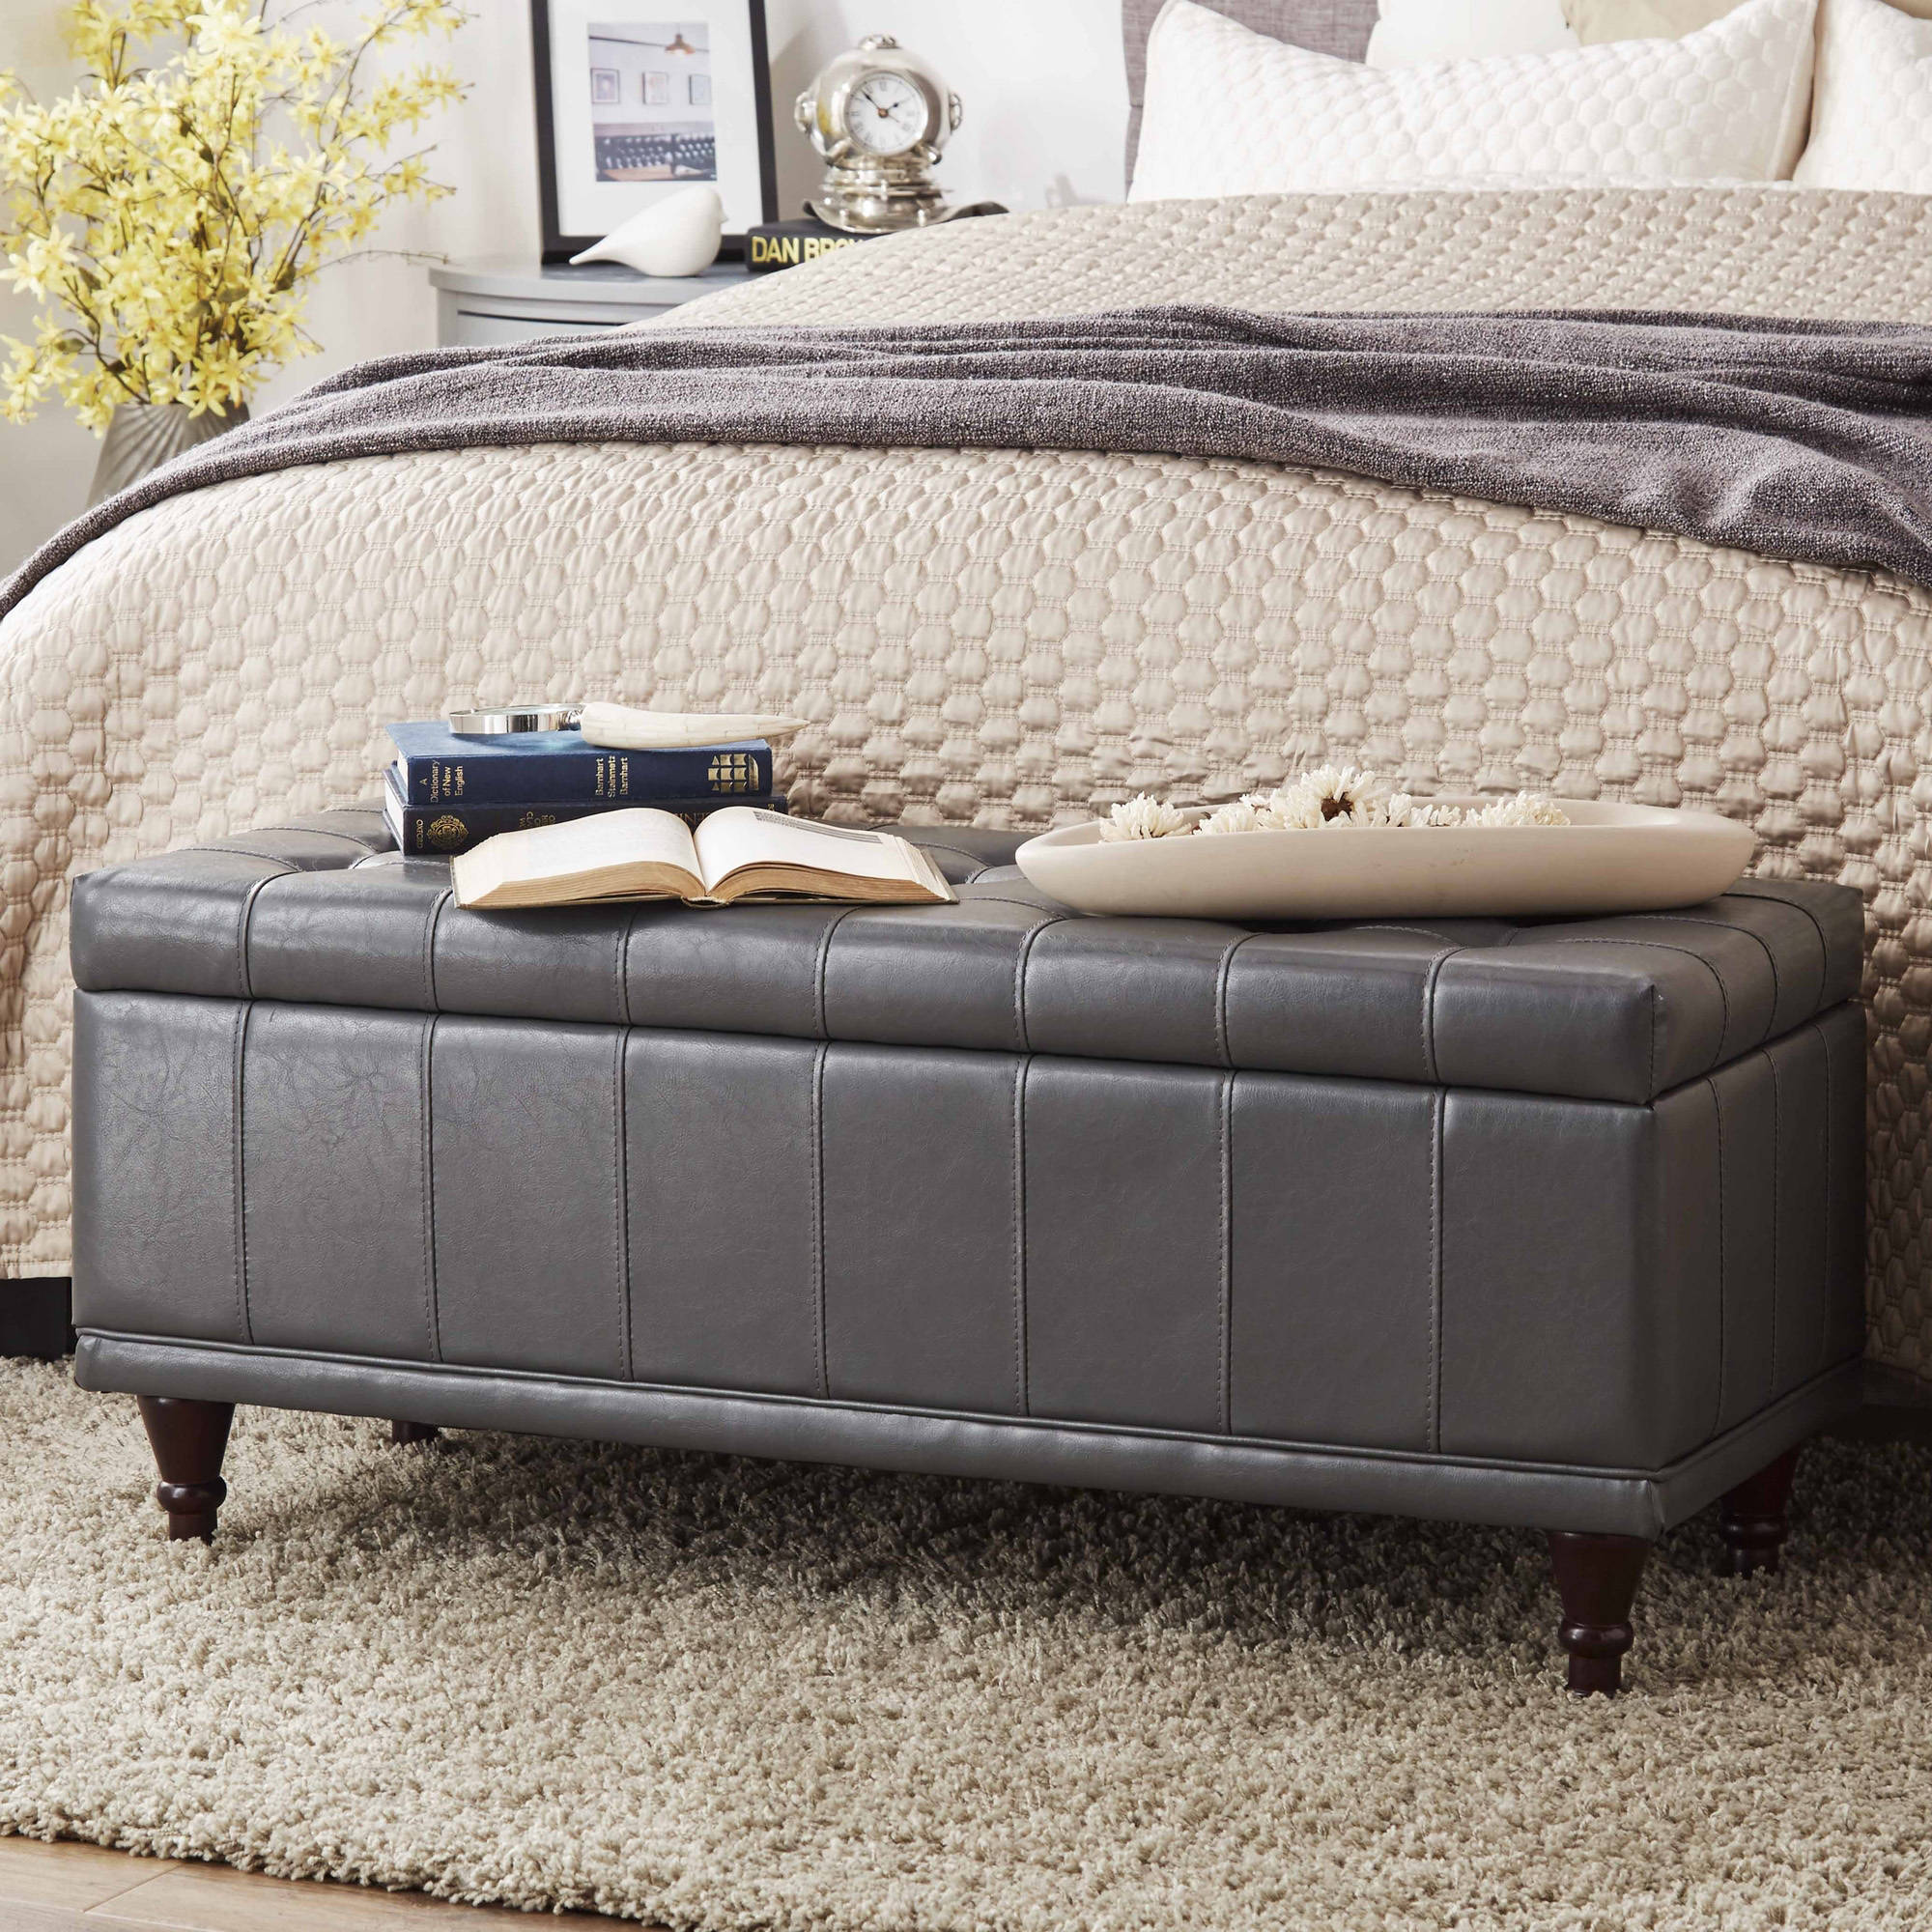 Chelsea Lane Lift-Up Faux Leather Storage Bench, Multiple Colors